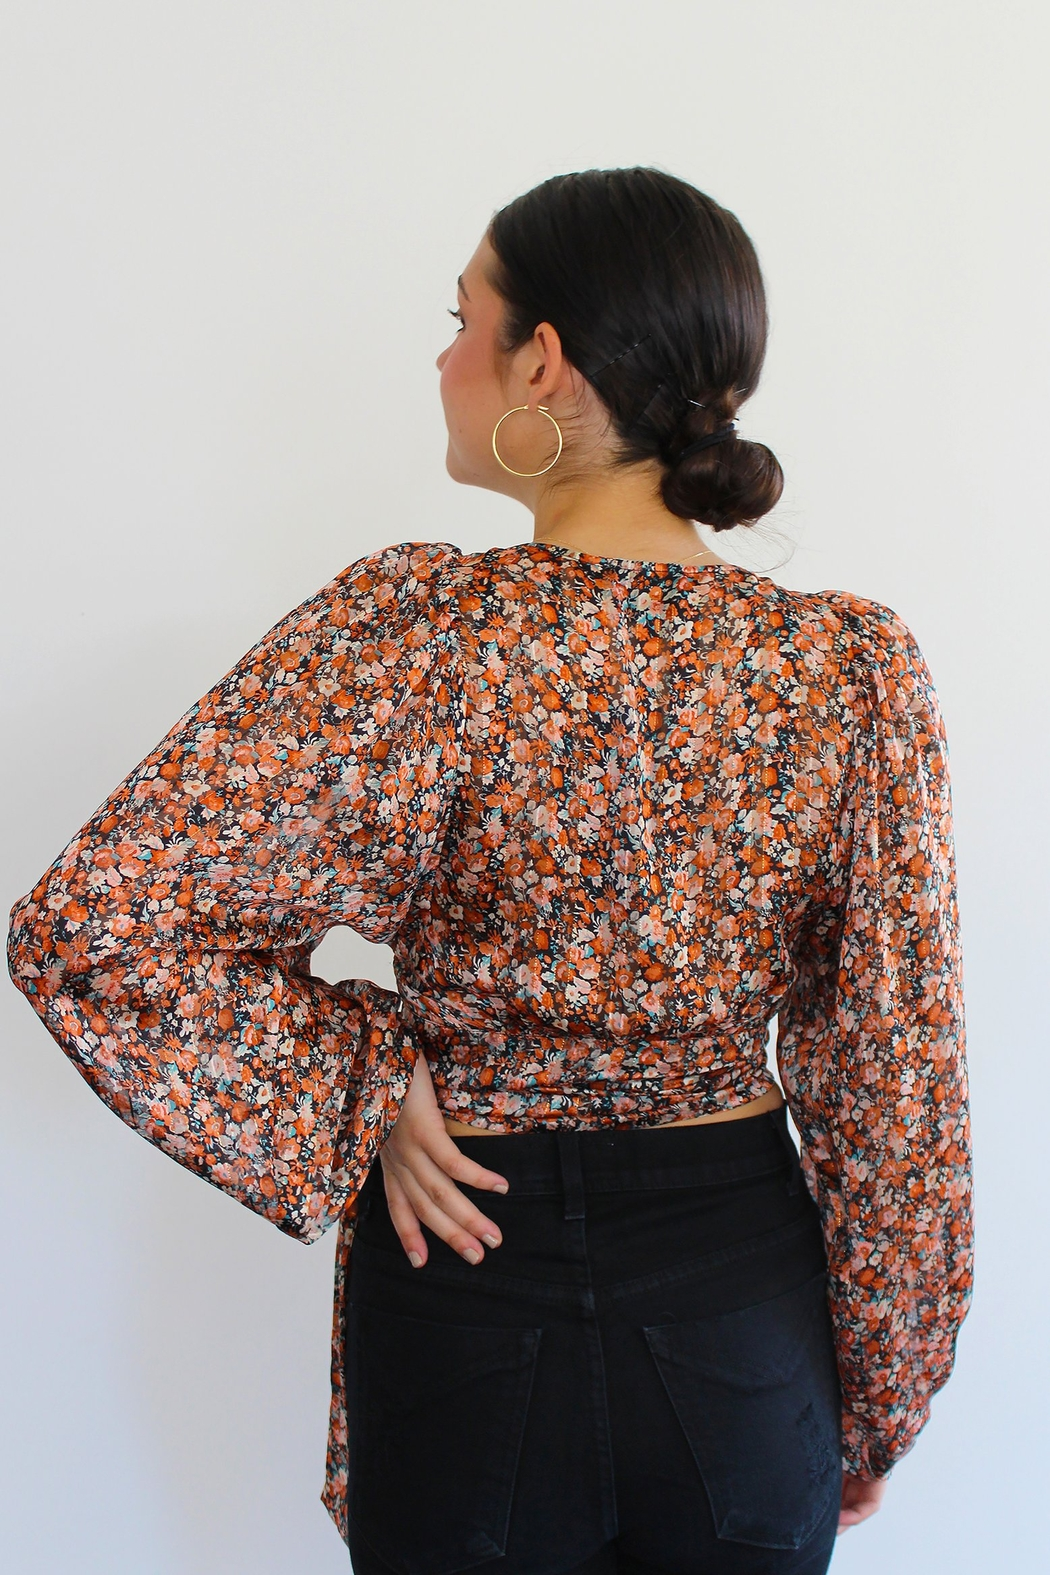 RESET BY JANE Nicolette Wrap Top - Side Cropped Image